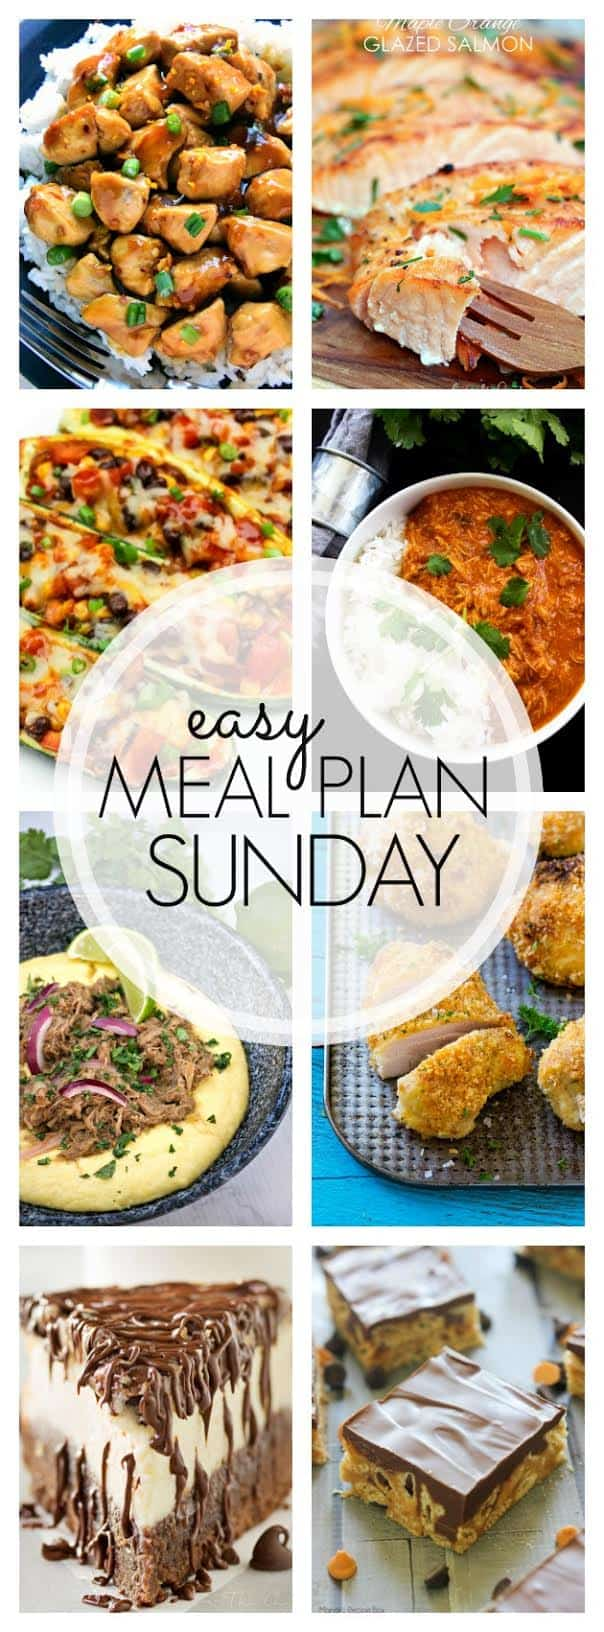 The BEST Easy Meal Plan! 6 dinners, 1 breakfast, and 2 desserts....all tried & true, family tested, and guaranteed to make your week easier!